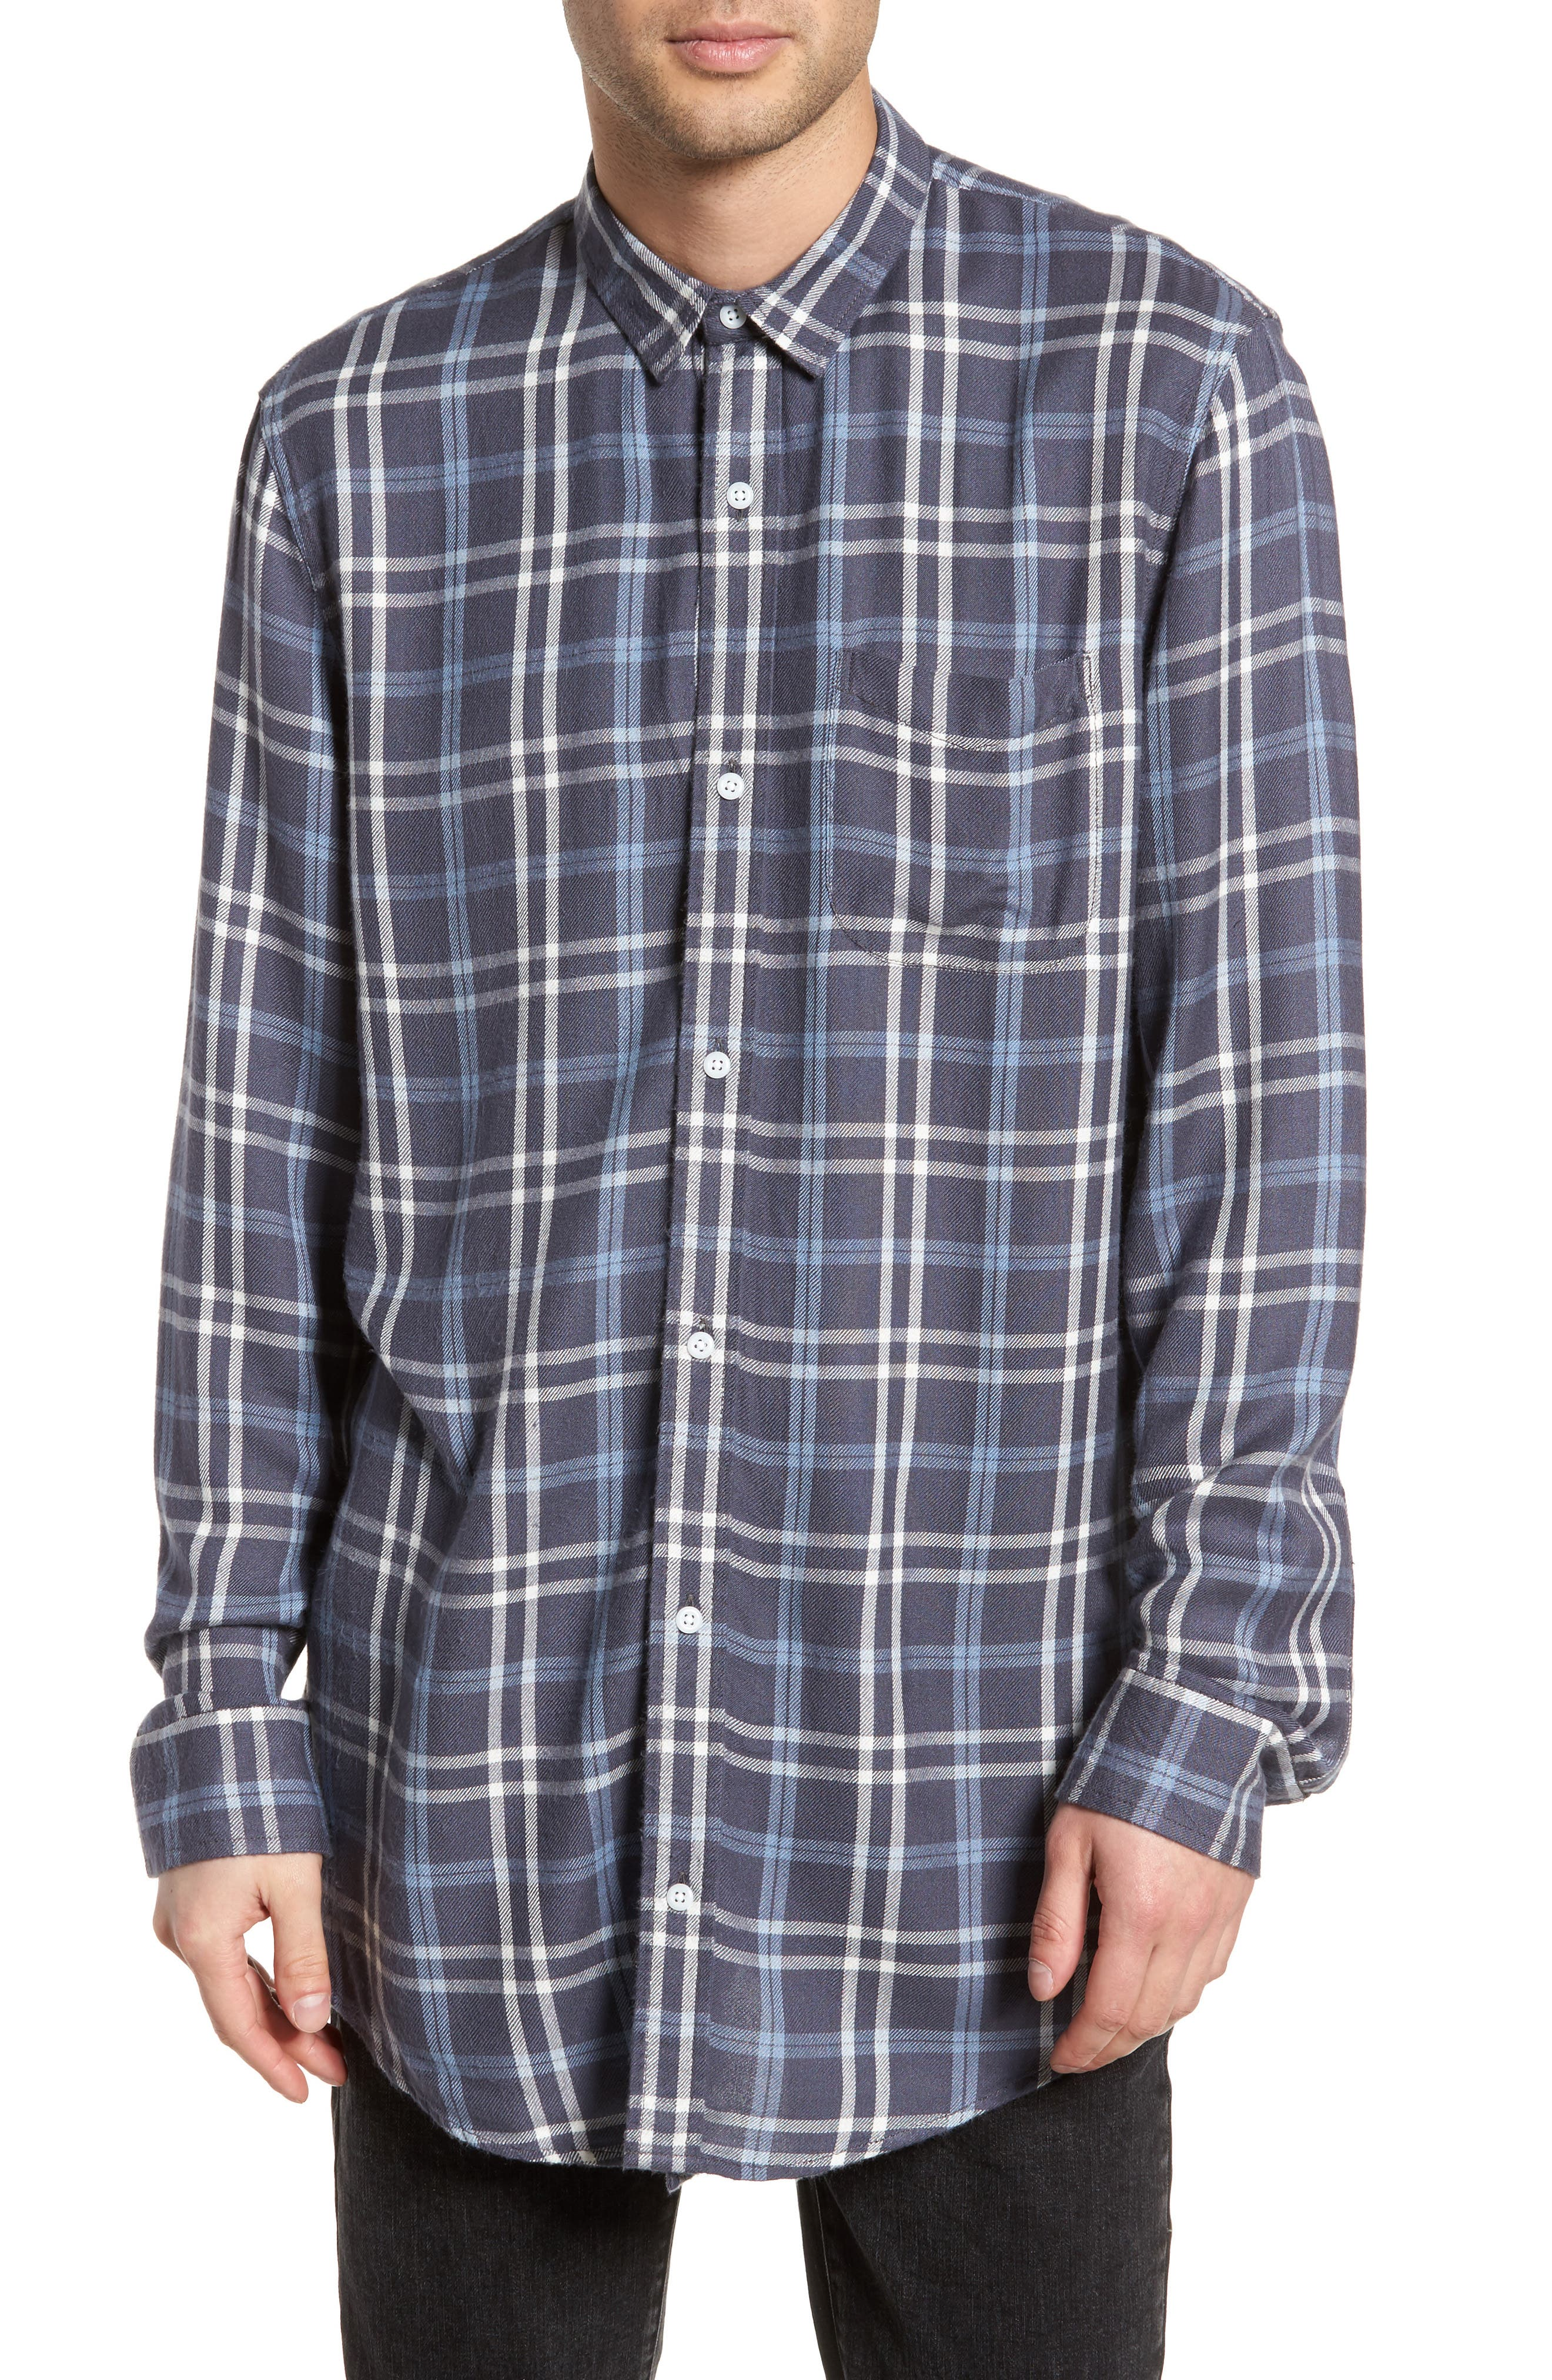 Yarn Dyed Plaid Shirt,                             Main thumbnail 1, color,                             Blue Grisaille Plaid